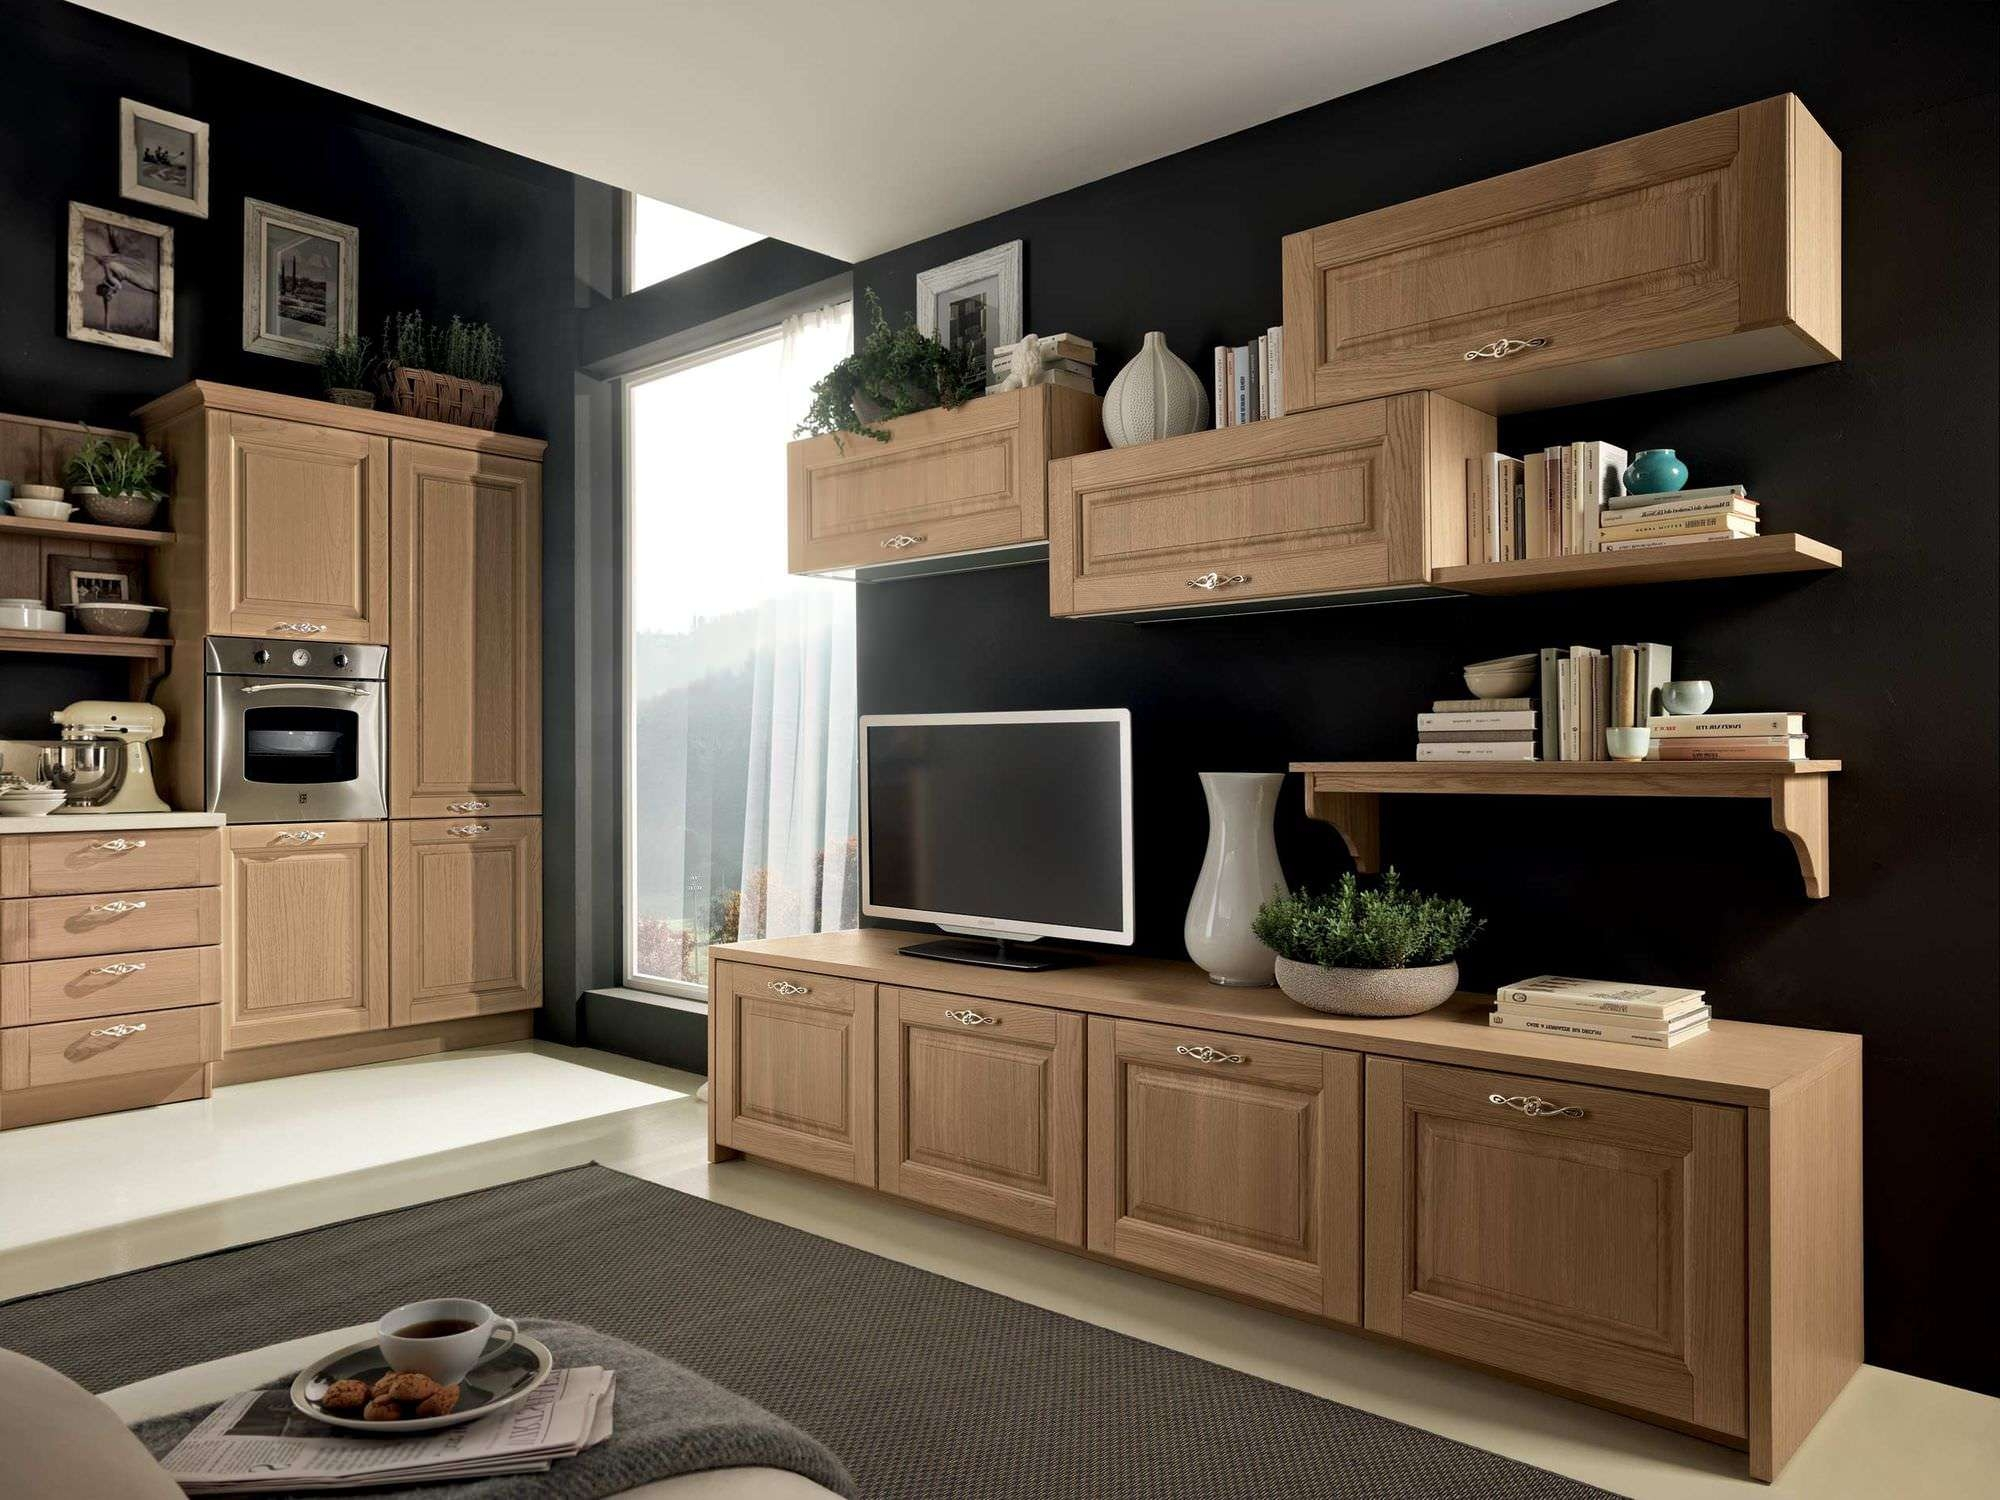 Traditional Tv Cabinet / Wooden – Bolgheri – Stosa Cucine Regarding Traditional Tv Cabinets (View 2 of 20)